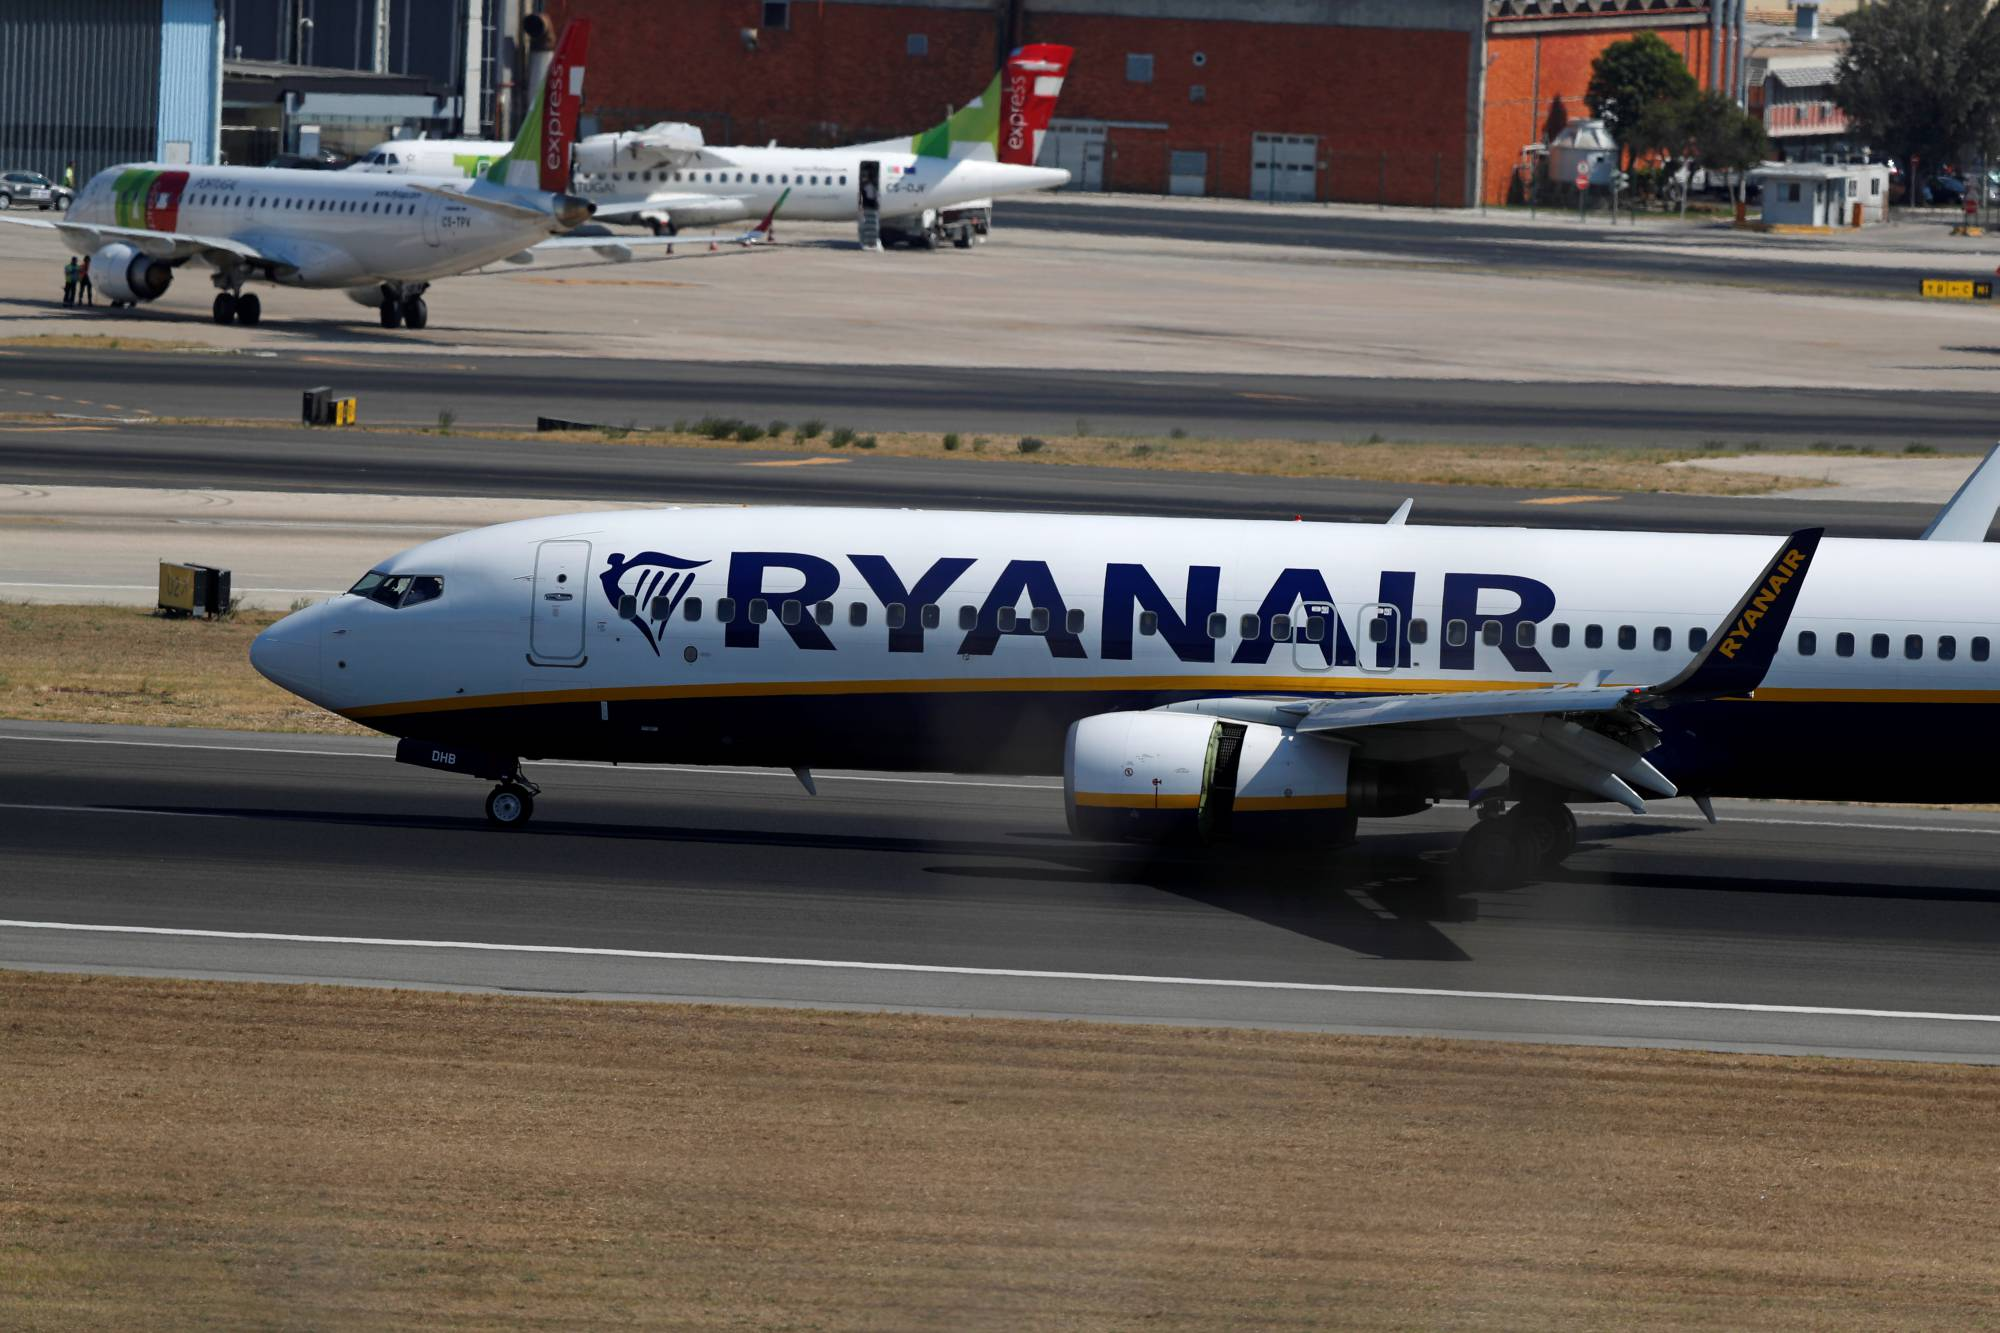 A Ryanair plane taxis at Lisbon's airport